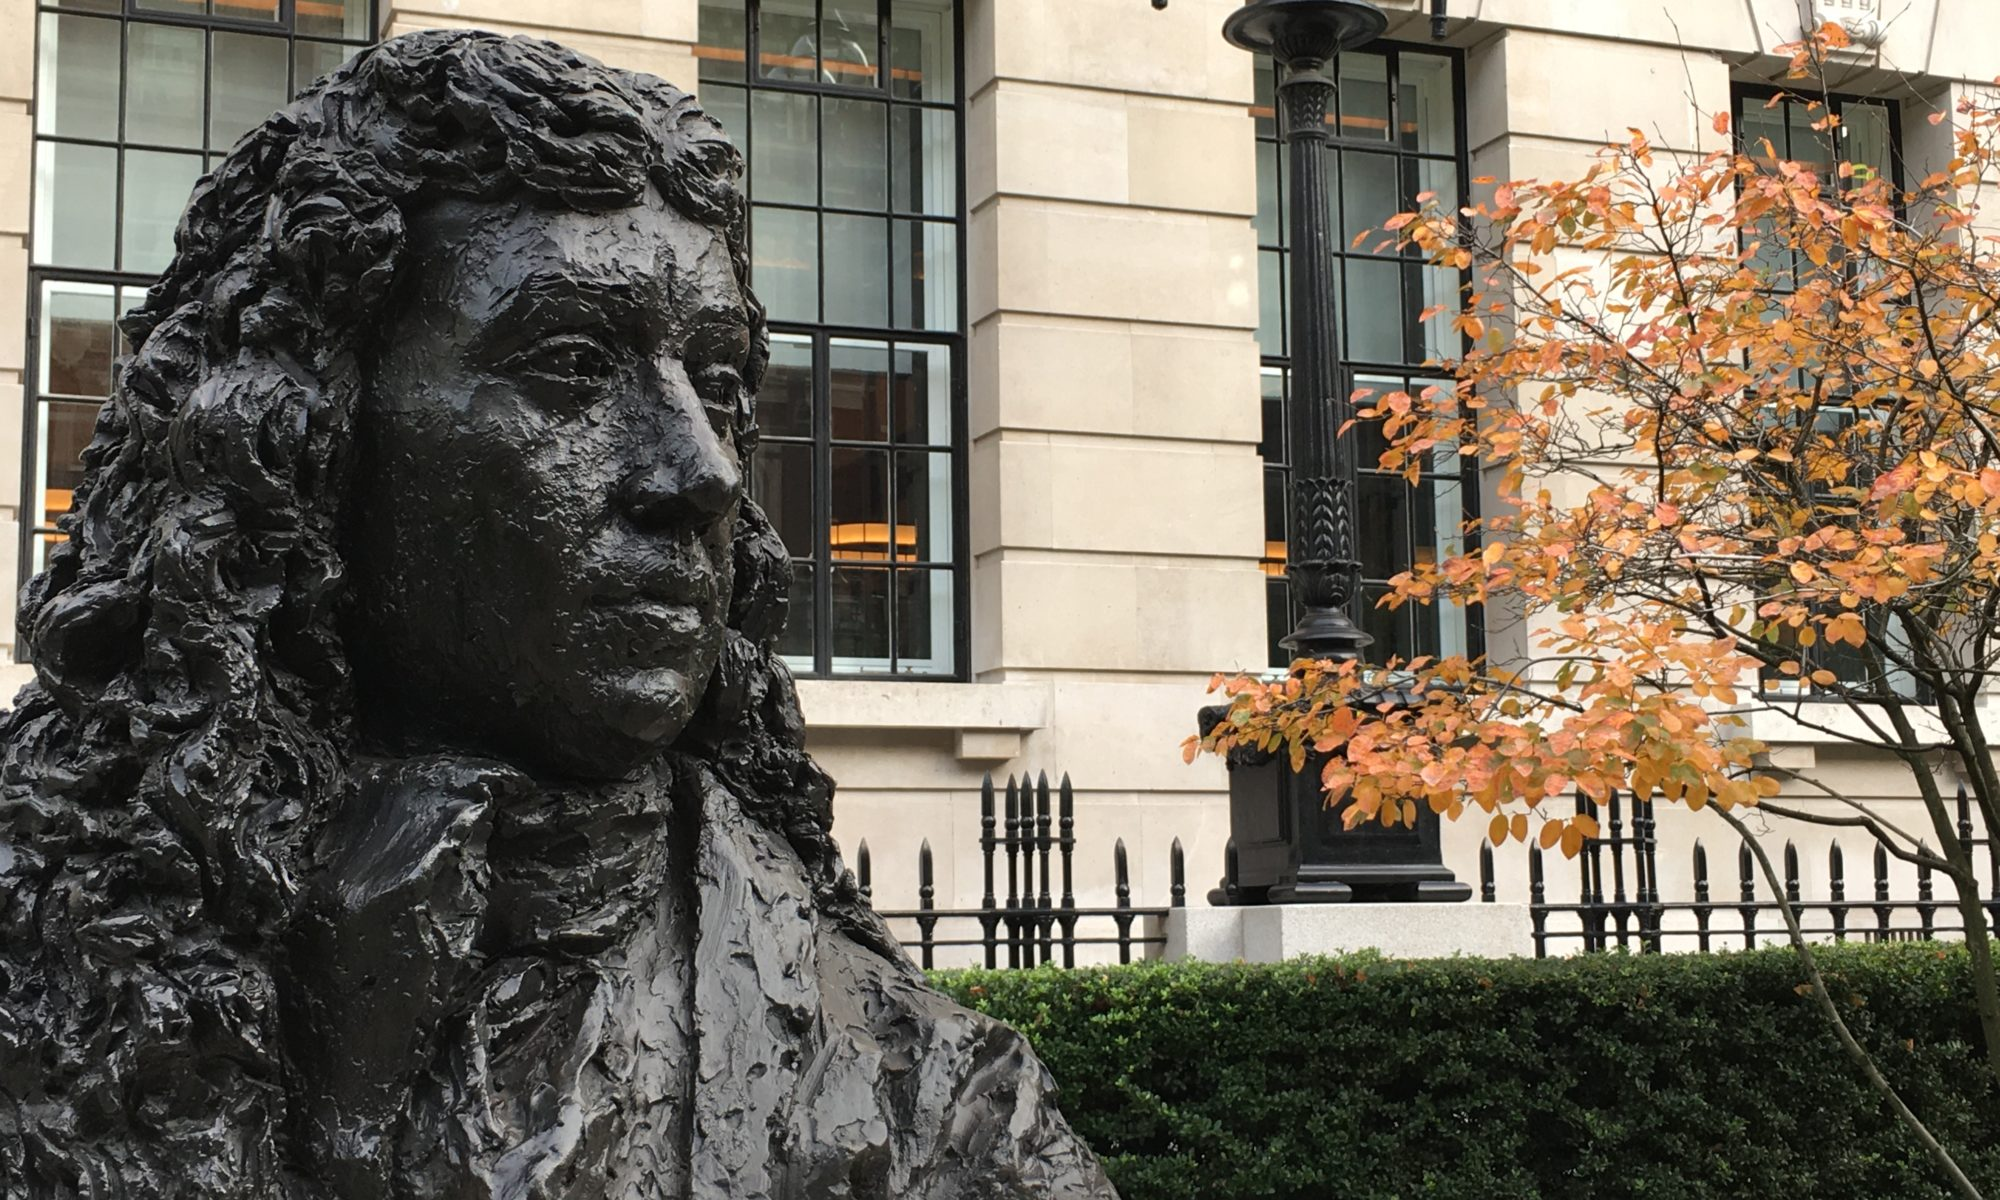 bust of Samuel Pepys at the site of his former residence